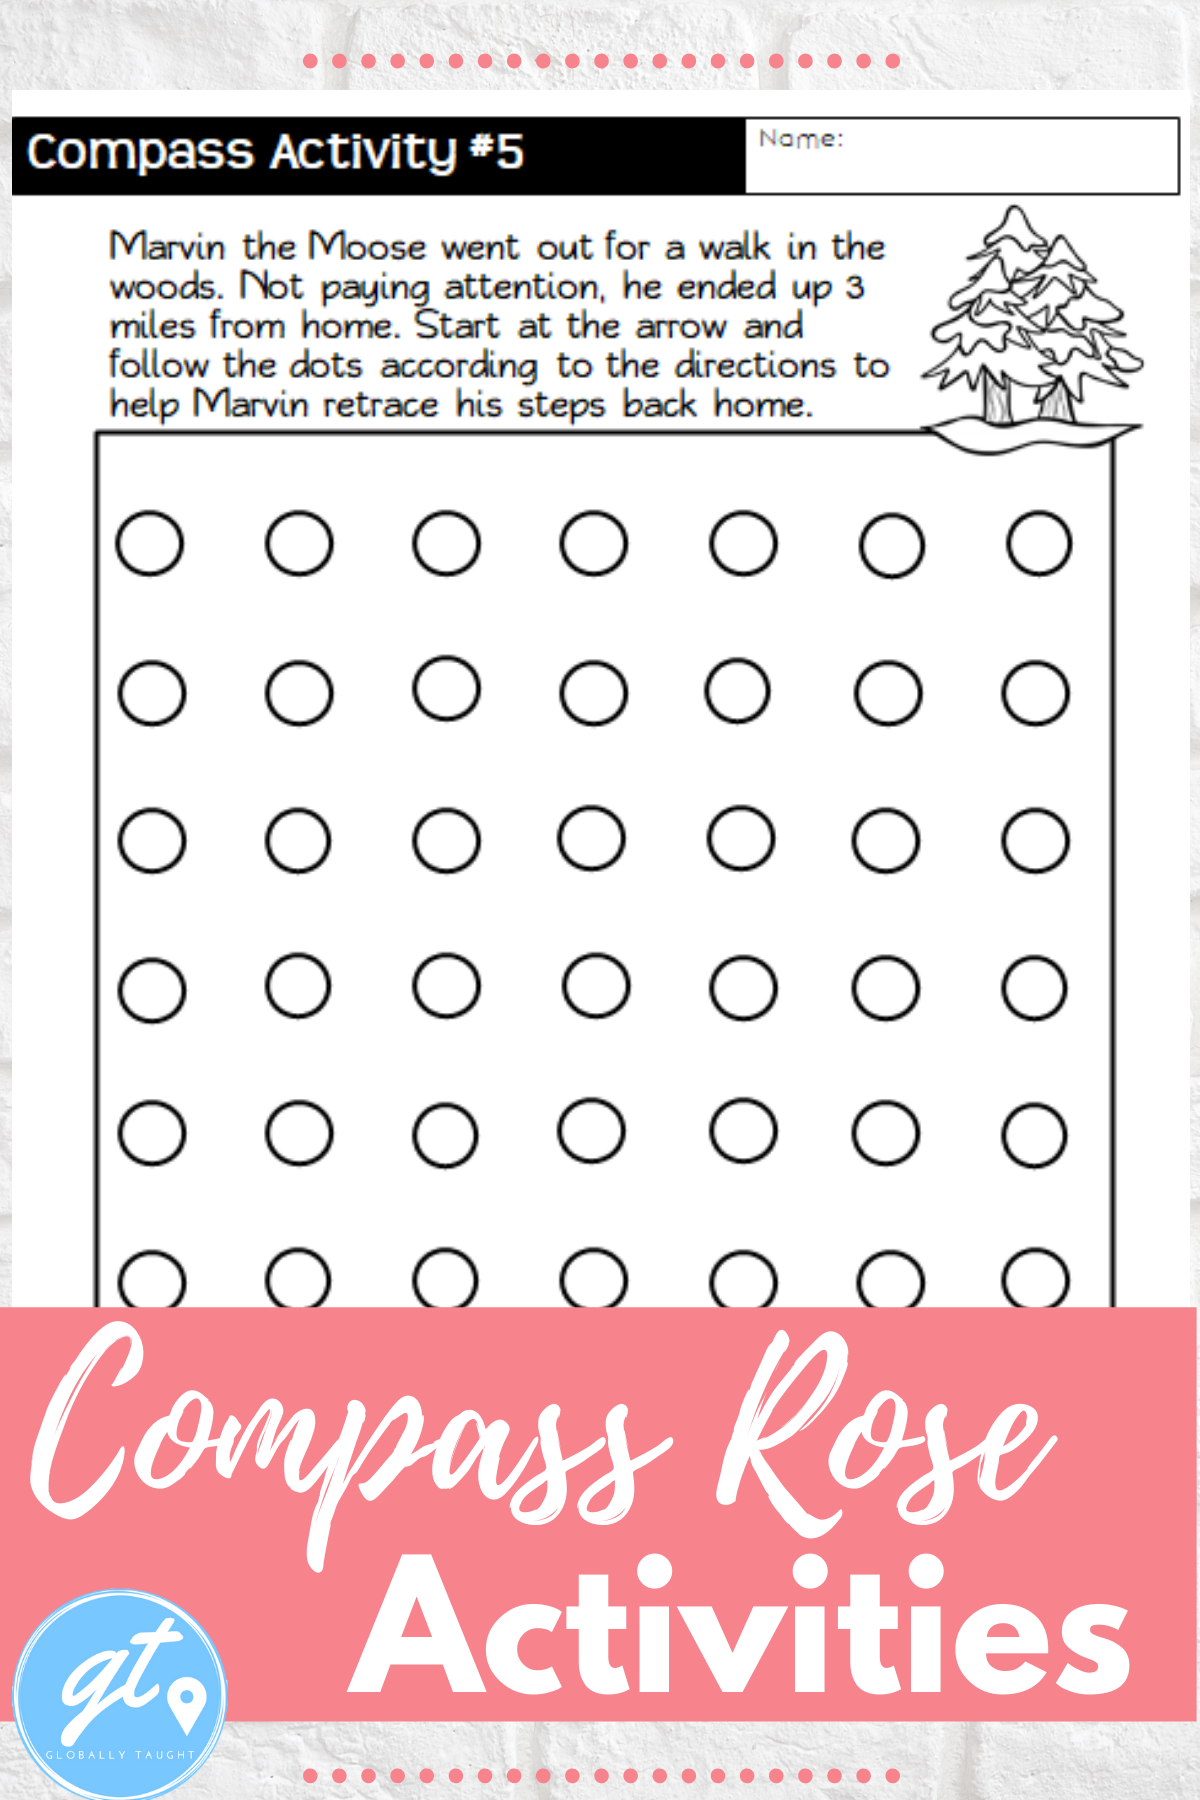 Compass Rose Lesson With Cardinal And Intermediate